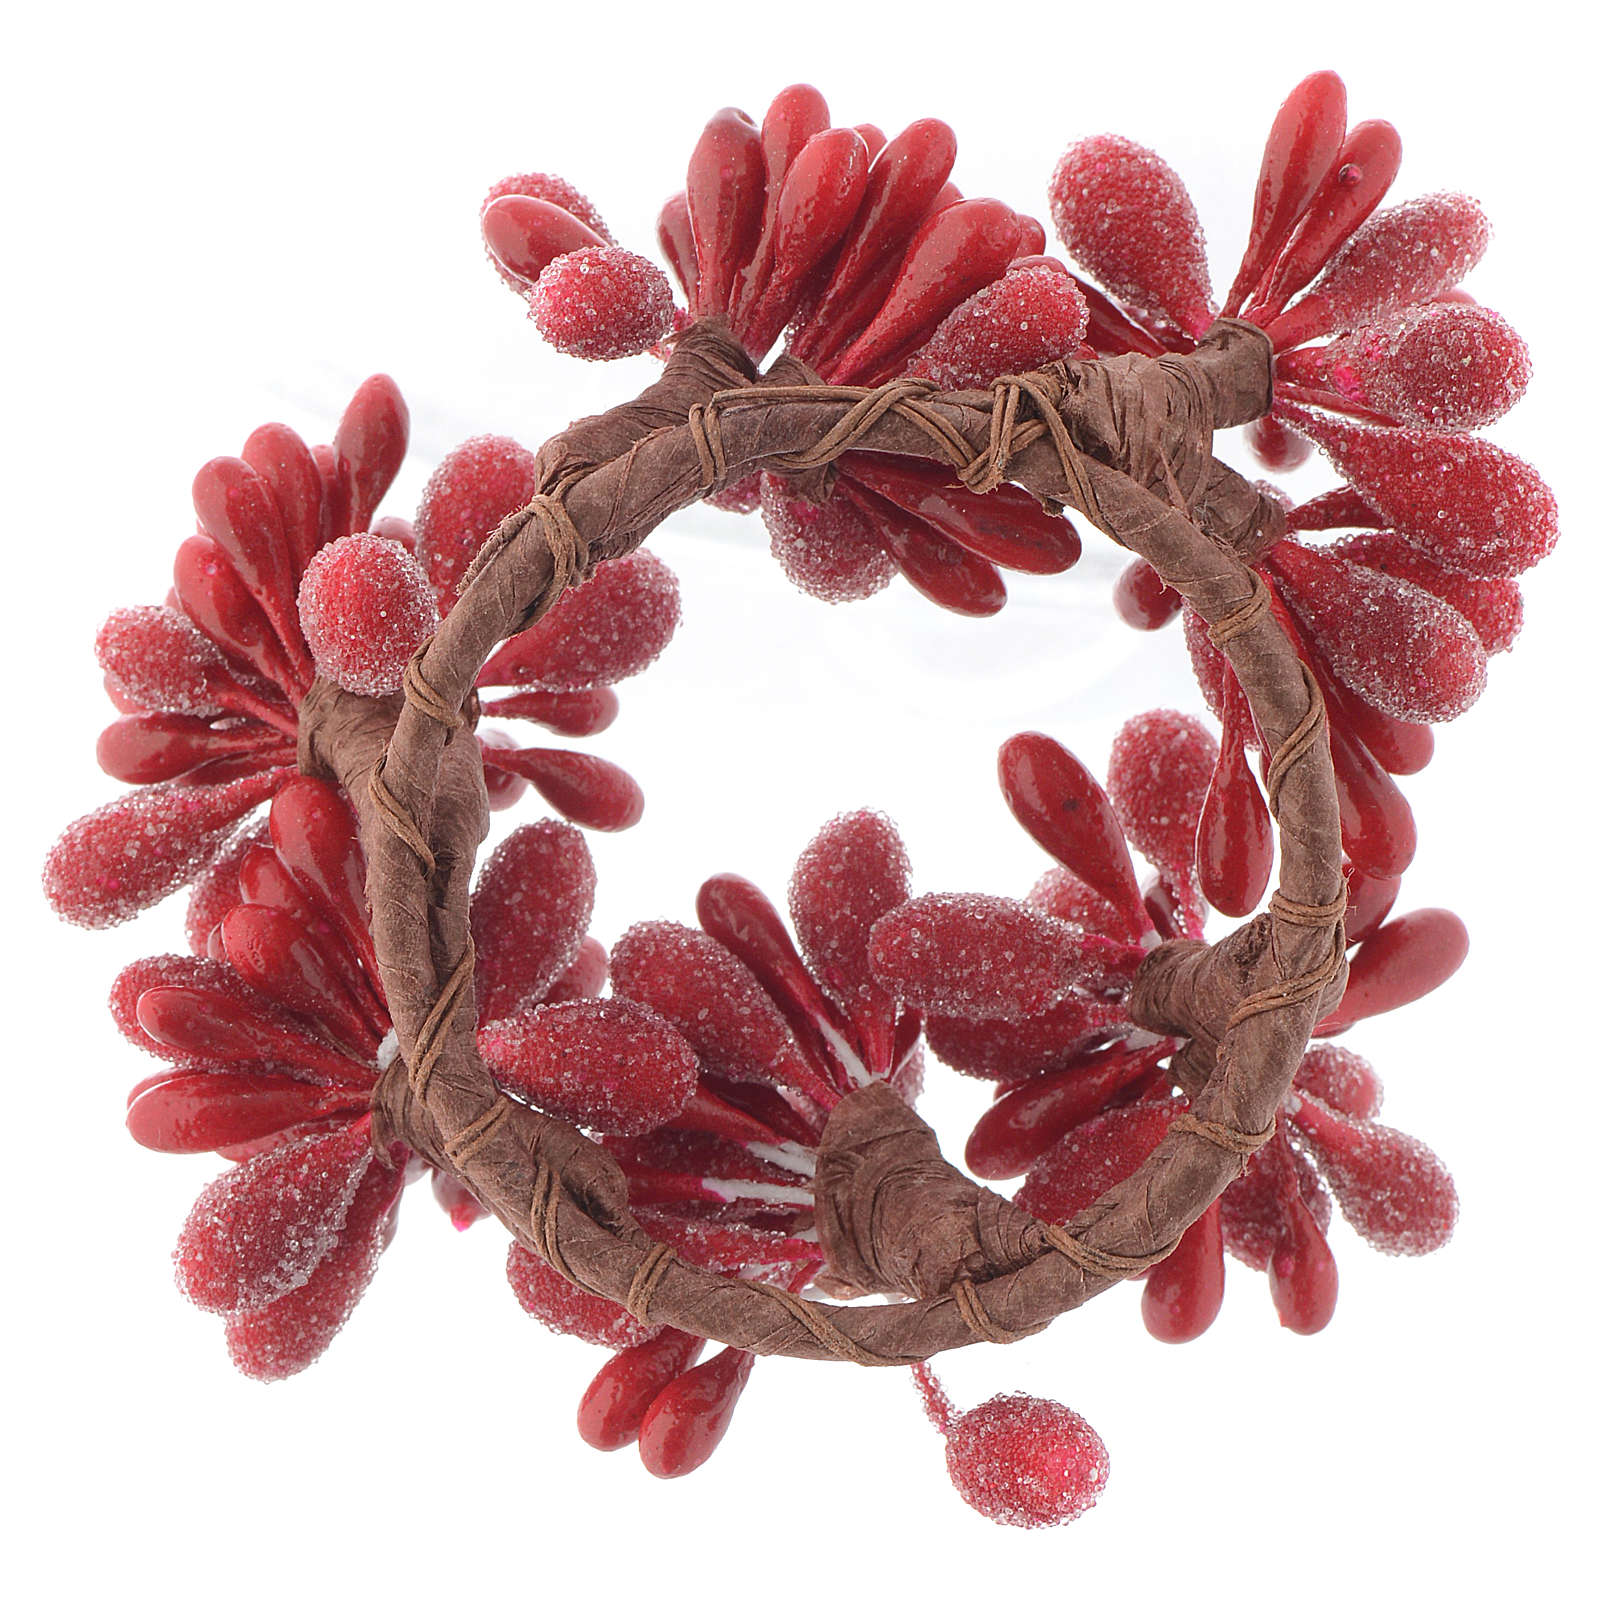 Christmas Candle Ring with Red Berries 4cm diameter 3